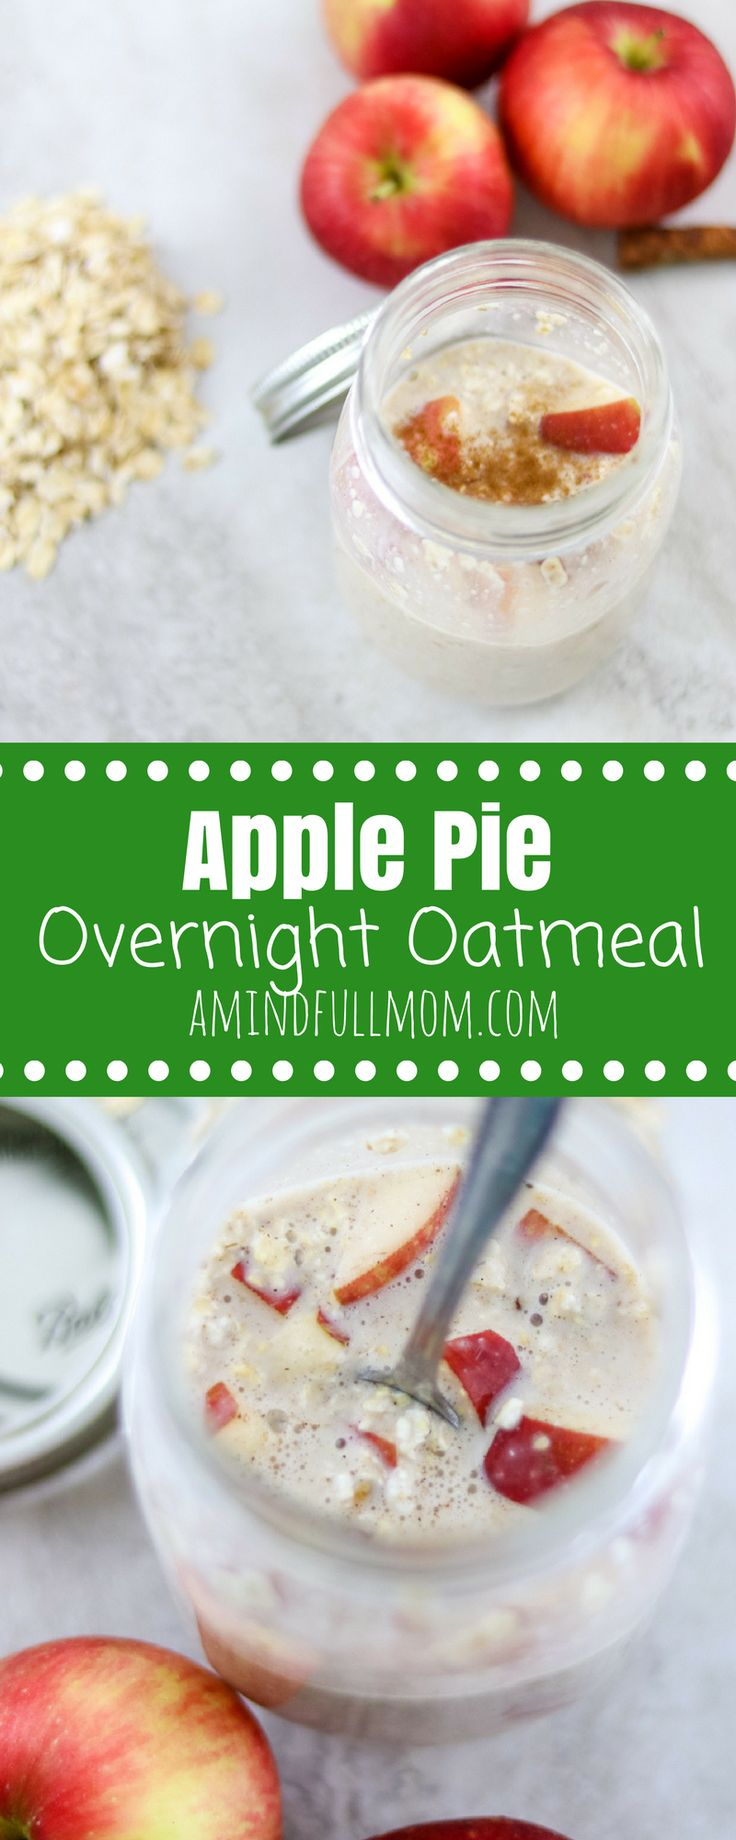 Overnight Apple Pie Oatmeal | Naturally Sweetened Oatmeal Recipe | Overnight Oatmeal Recipe | Dairy Free Oatmeal Recipe | Gluten Free Breakfast Recipe | Gluten Free Apple Pie Oatmeal | Vegan Breakfast Recipe | Easy Vegan Recipe | Healthy Breakfast Recipe